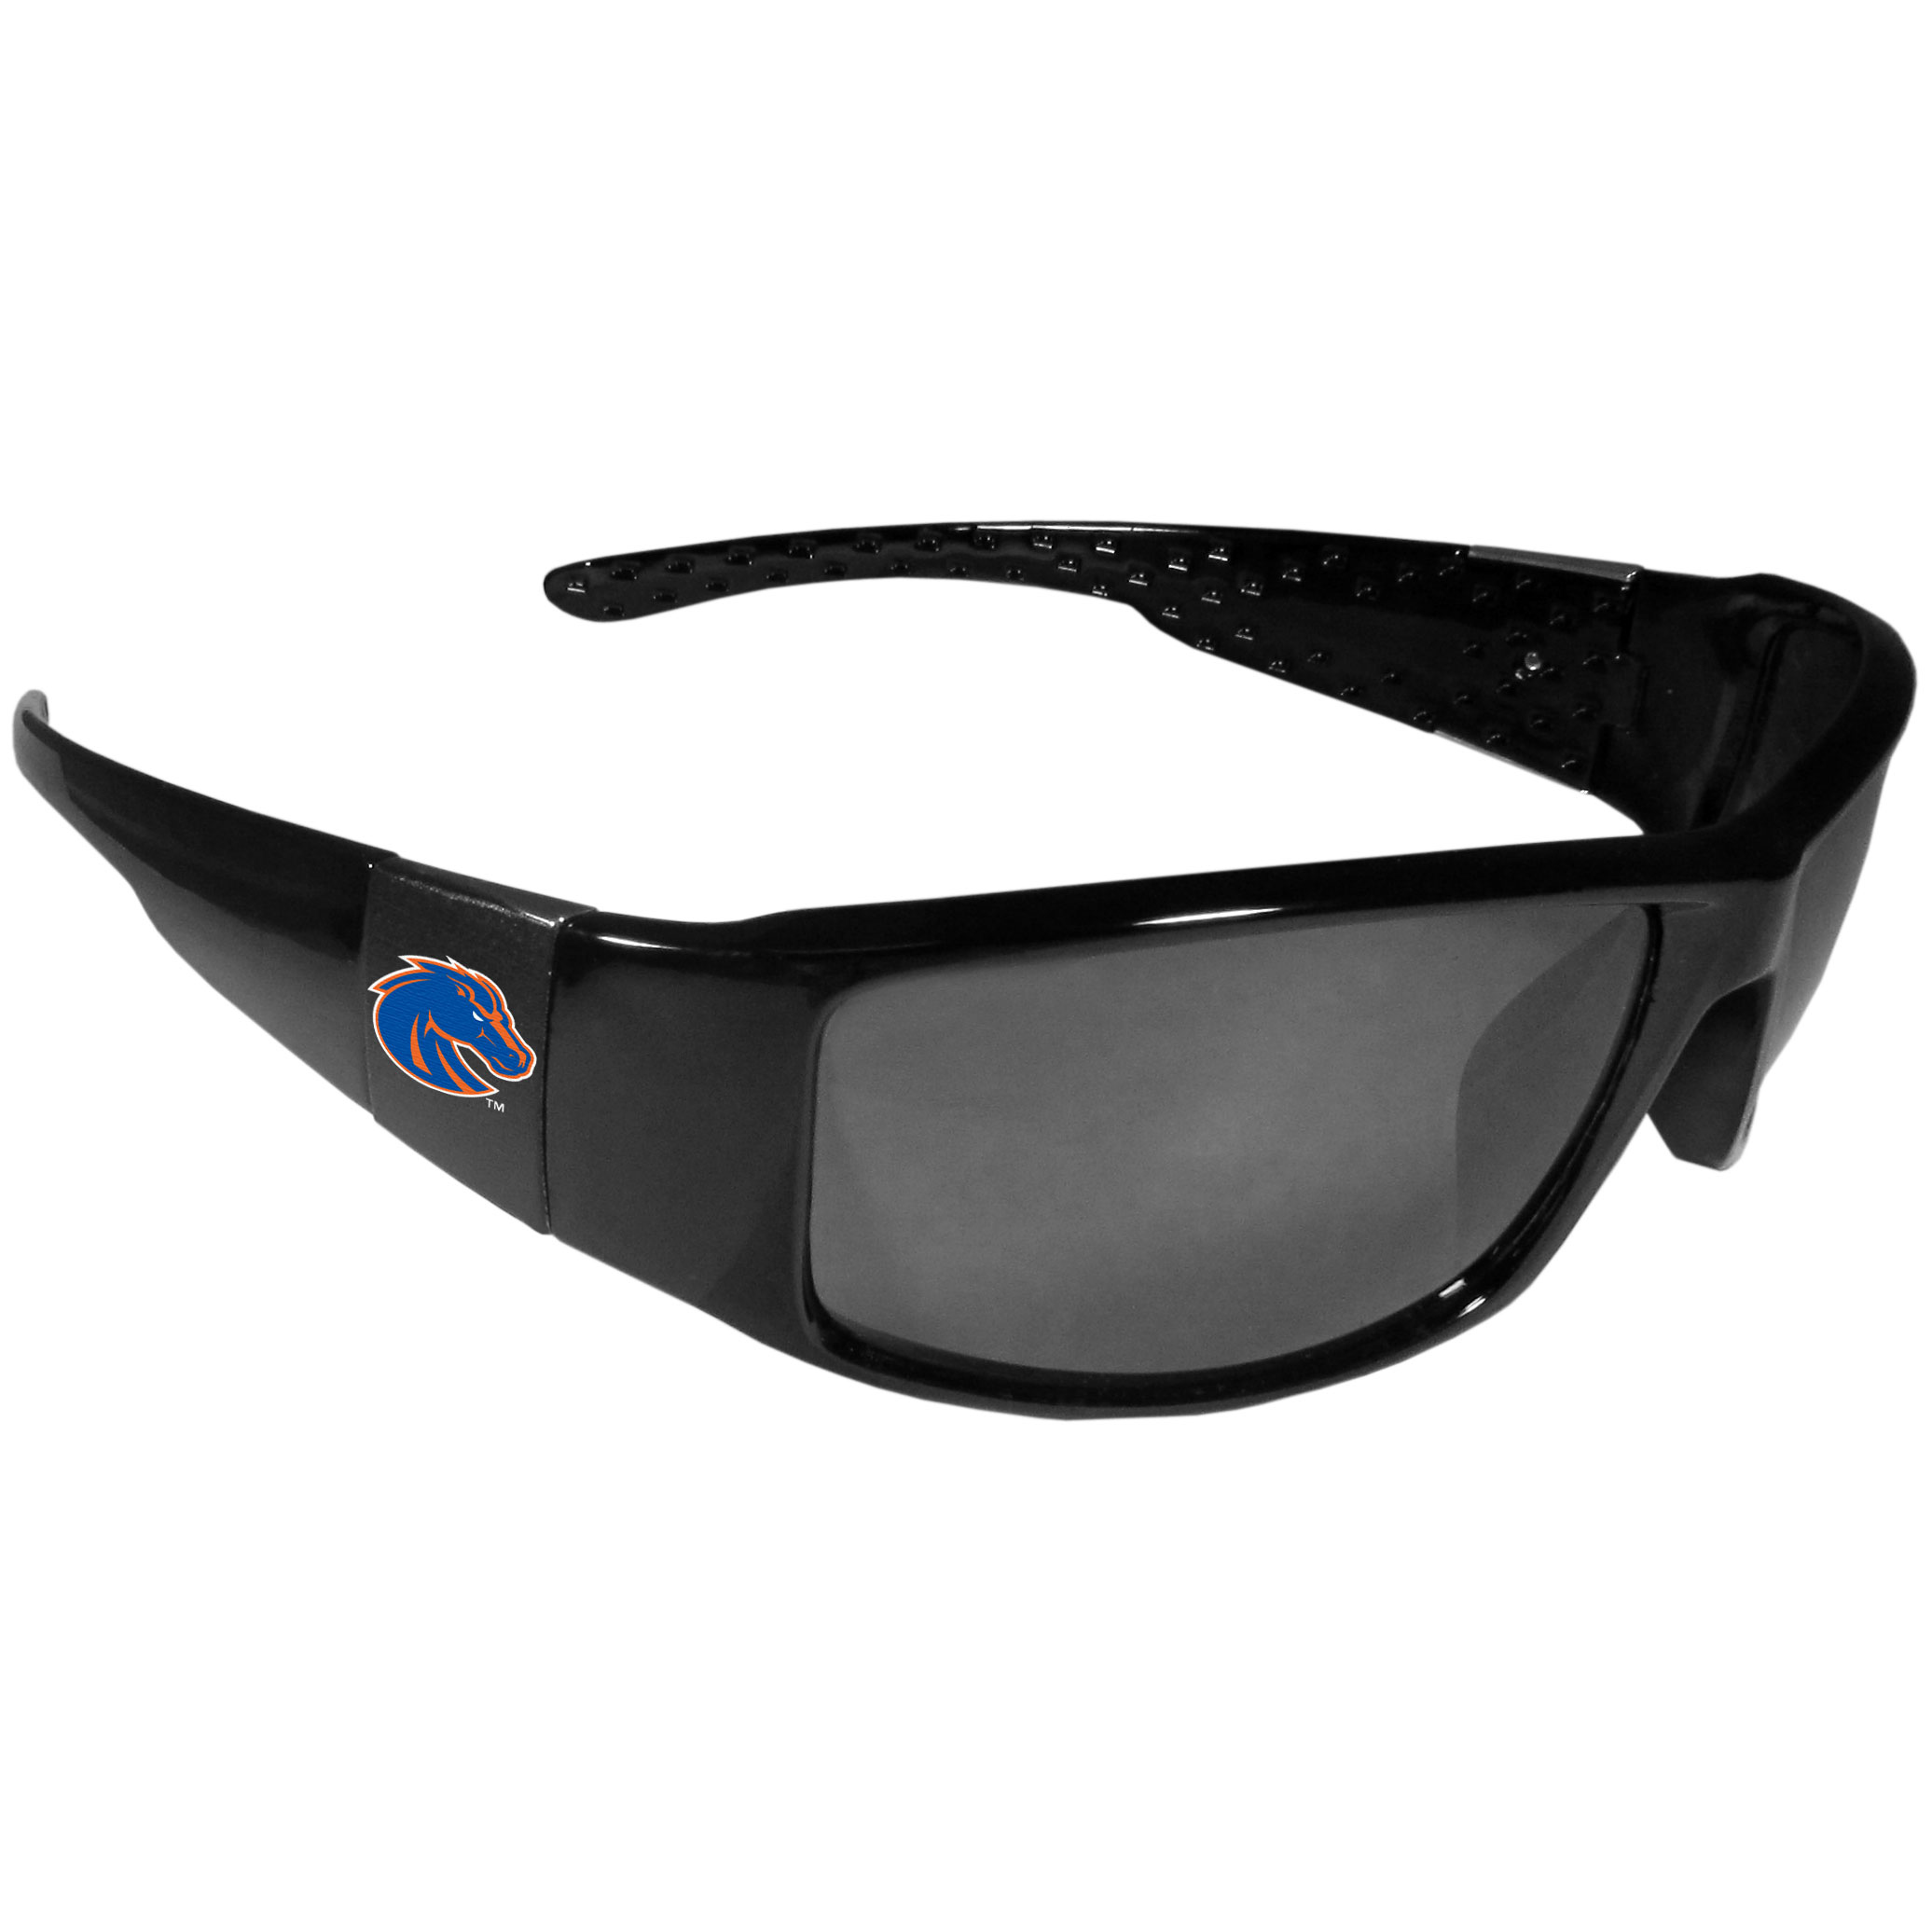 Boise St. Broncos Black Wrap Sunglasses - These designer inspired frames have a sleek look in all black with  Boise St. Broncos shields on each arm with a printed logo. The shades are perfect for any outdoor activity like; golfing, driving, hiking, fishing or cheering on the team at a tailgating event or at a home game day BBQ with a lens rating of 100% UVA/UVB for maximum UV protection. The high-quality frames are as durable as they are fashionable and with their classic look they are the perfect fan accessory that can be worn everyday for every occasion.